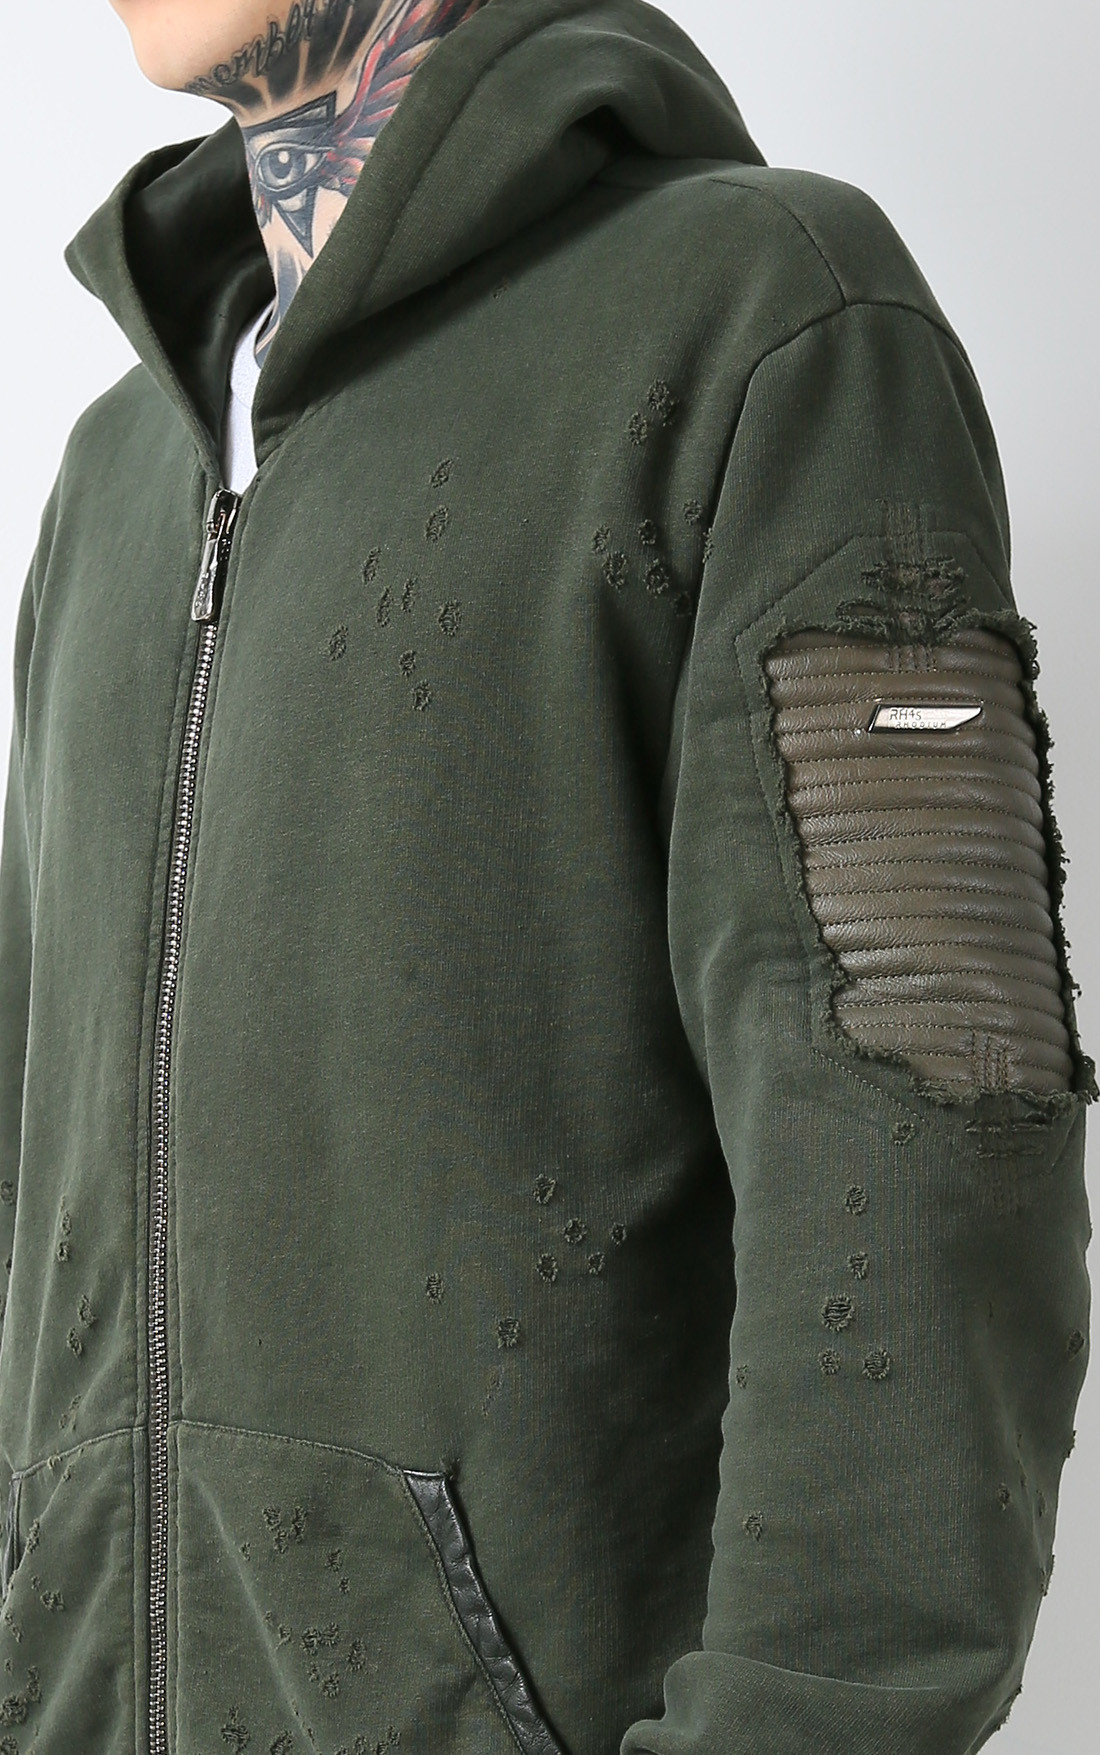 RH45 - Green Hoodie with Leather (H201)